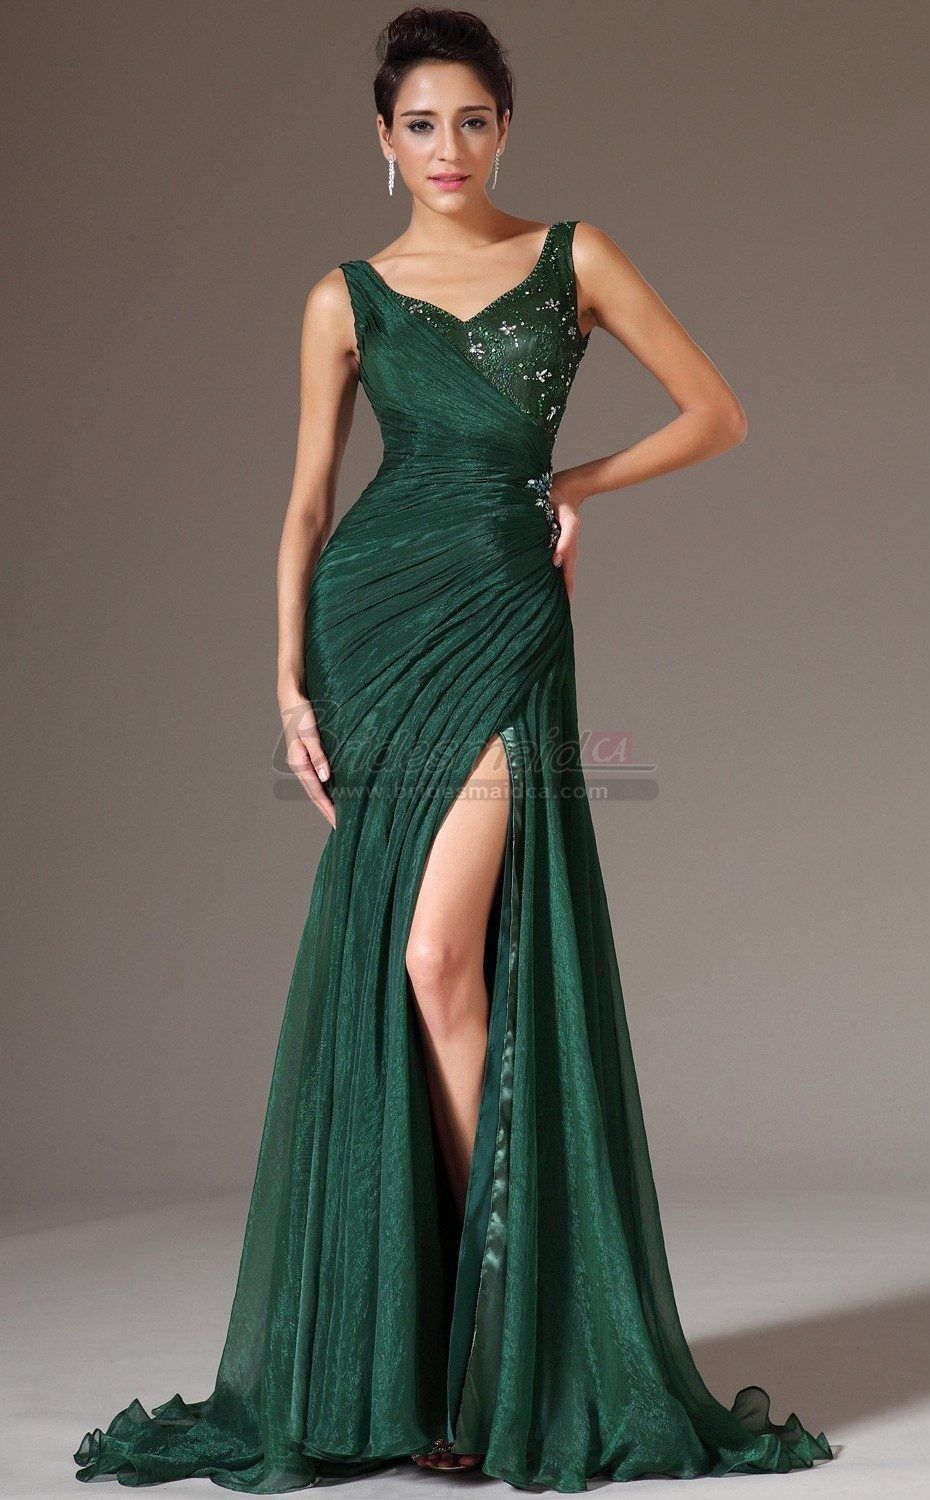 Green hunter lace bridesmaid dresses images